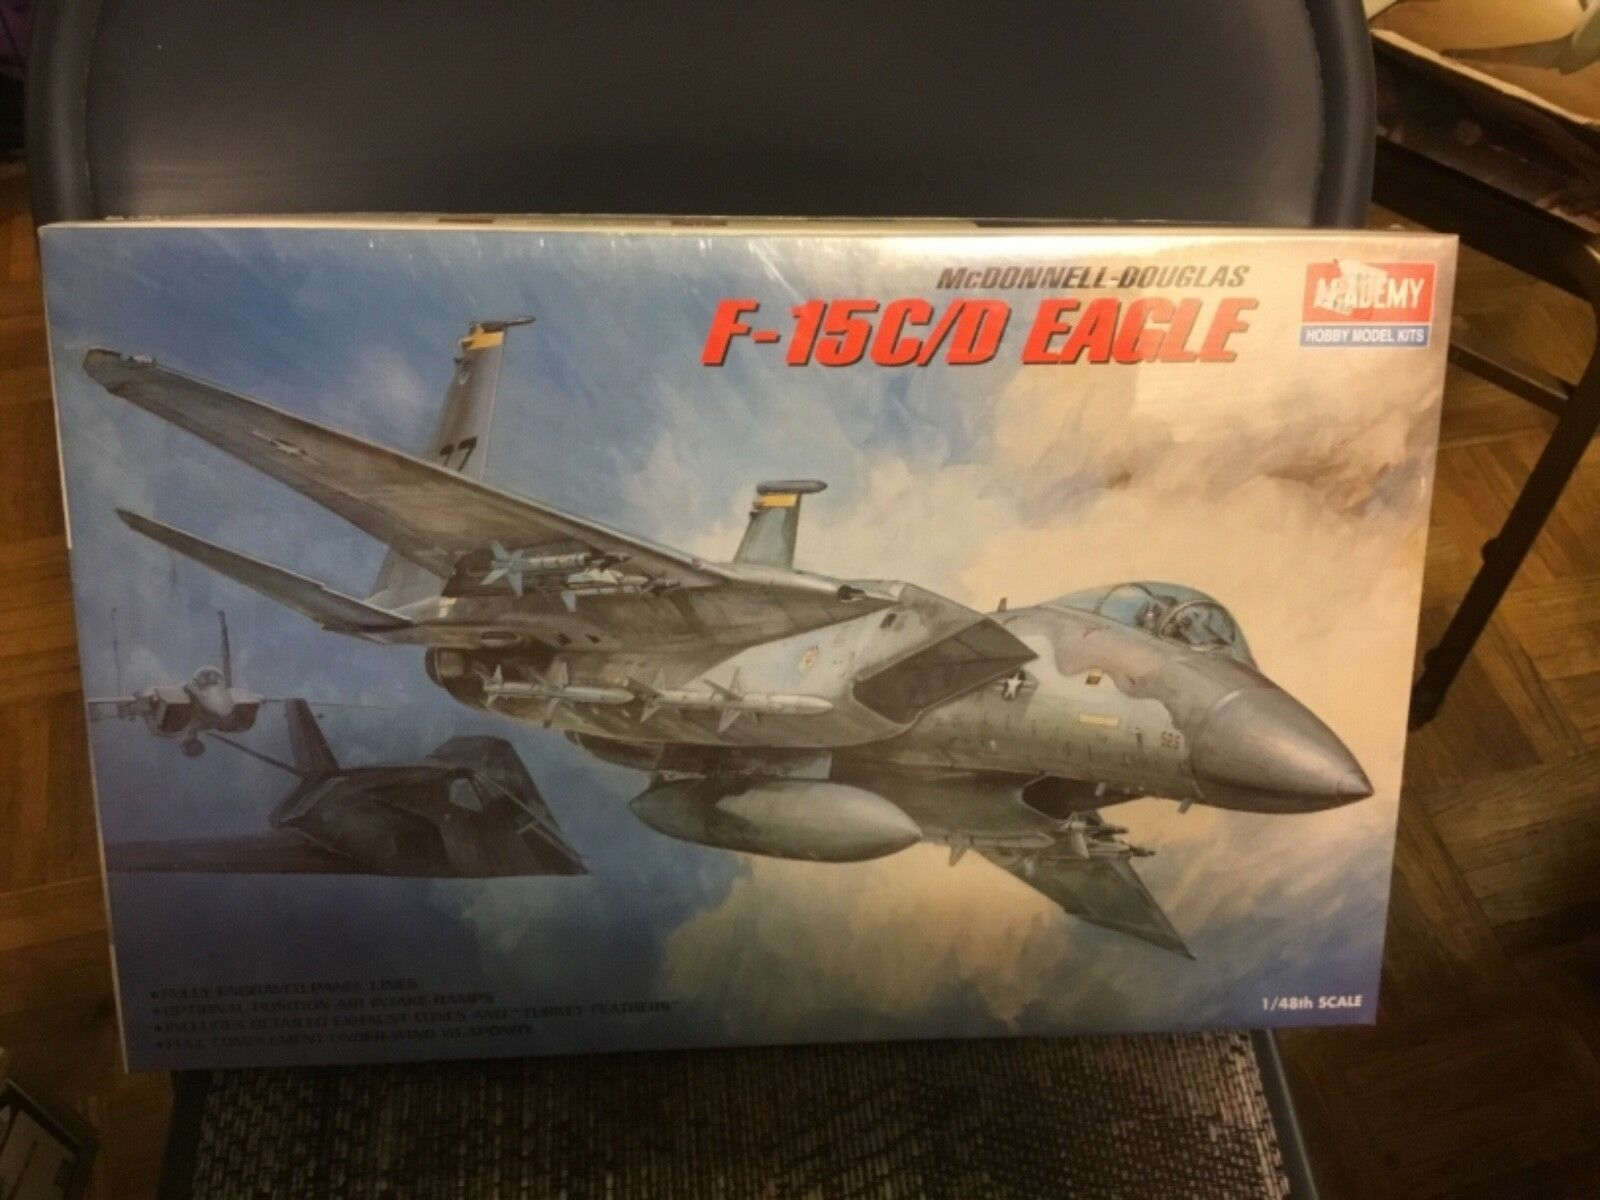 Academy F-15C D Eagle 1 48 Scale